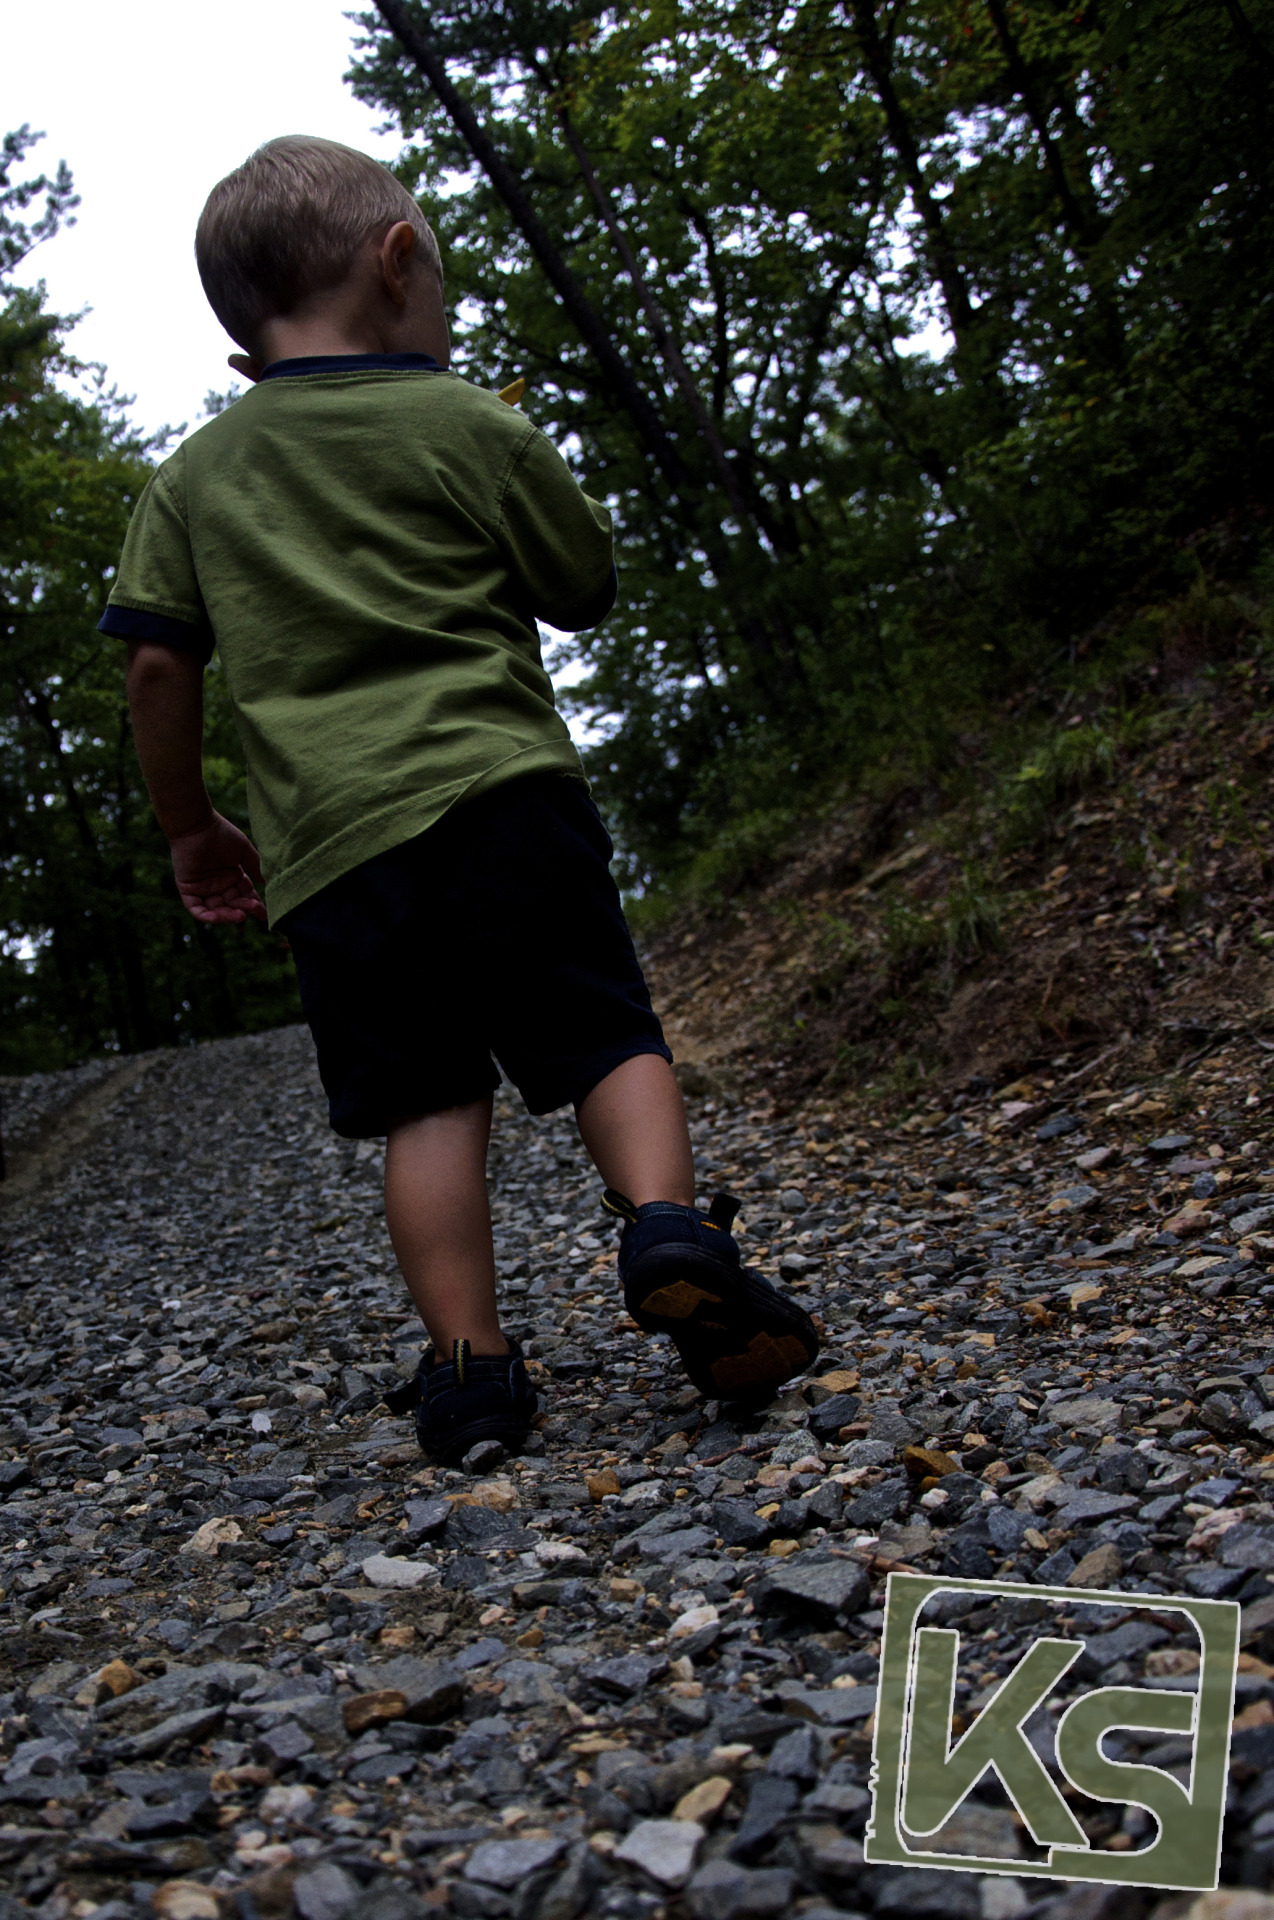 Liam Hiking - Hanging Rock National Park, NC